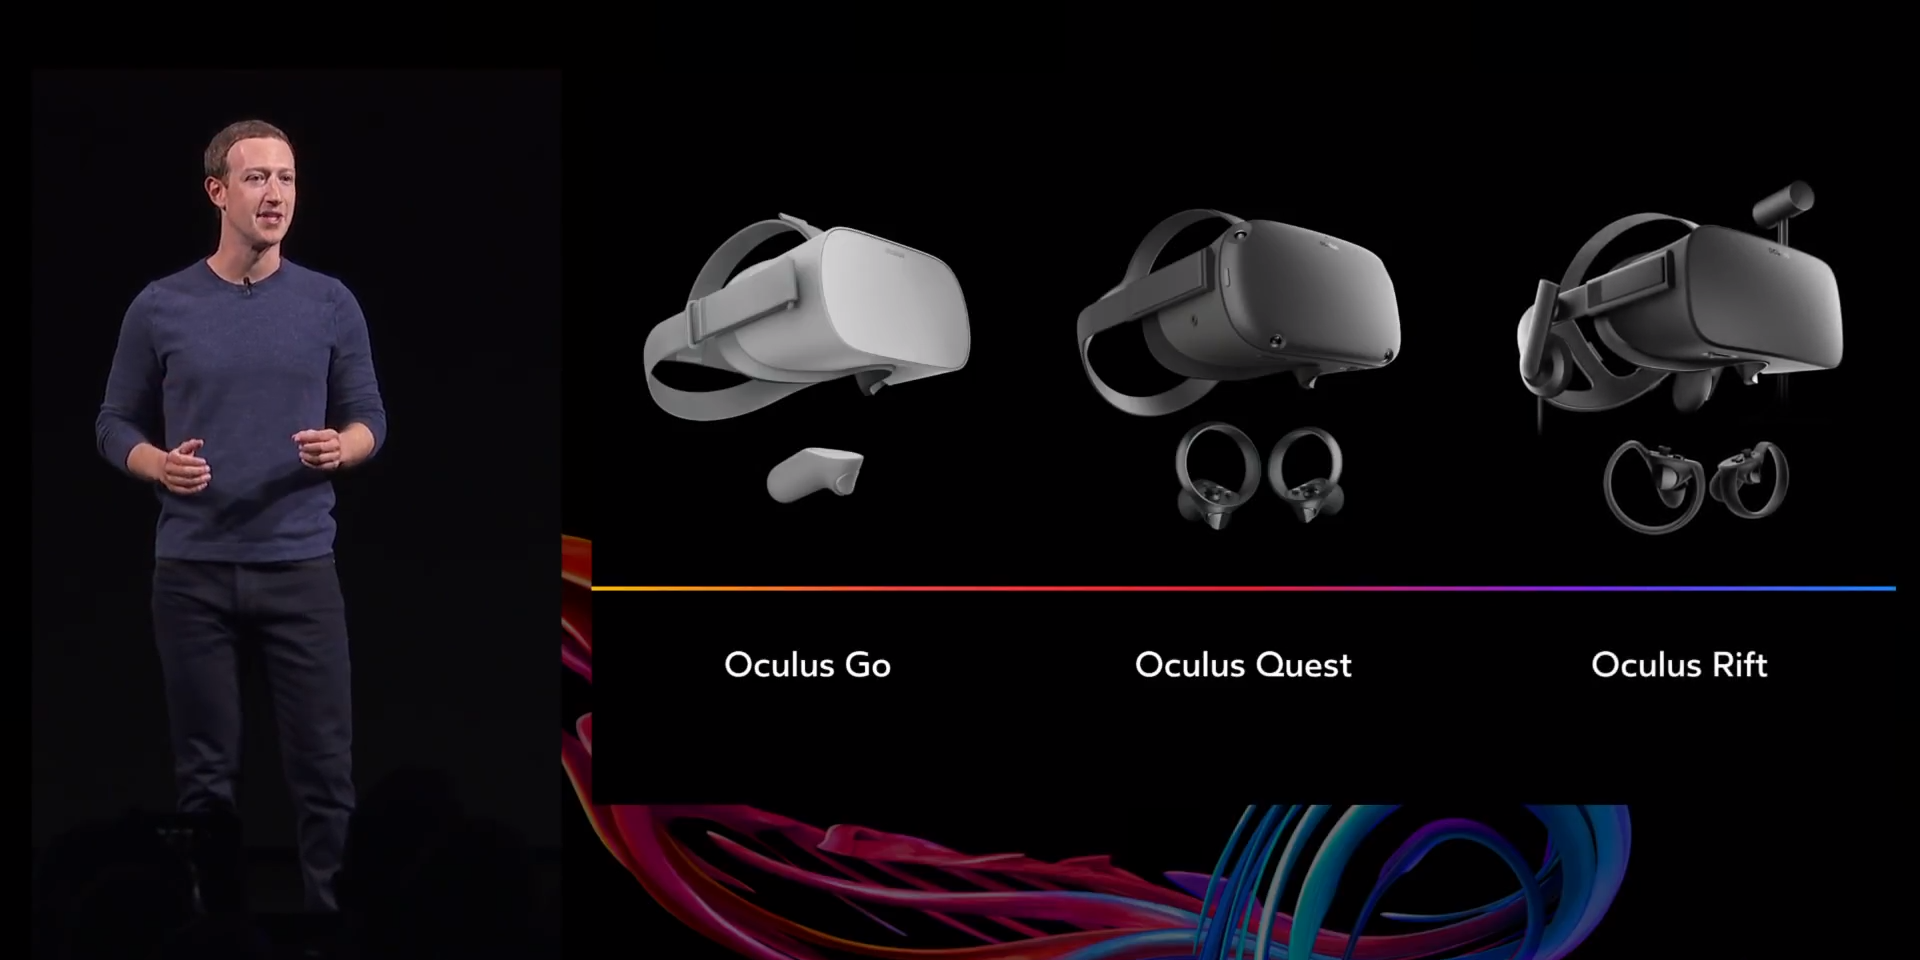 facebook mark zuckerberg unviels oculus vr headset choices